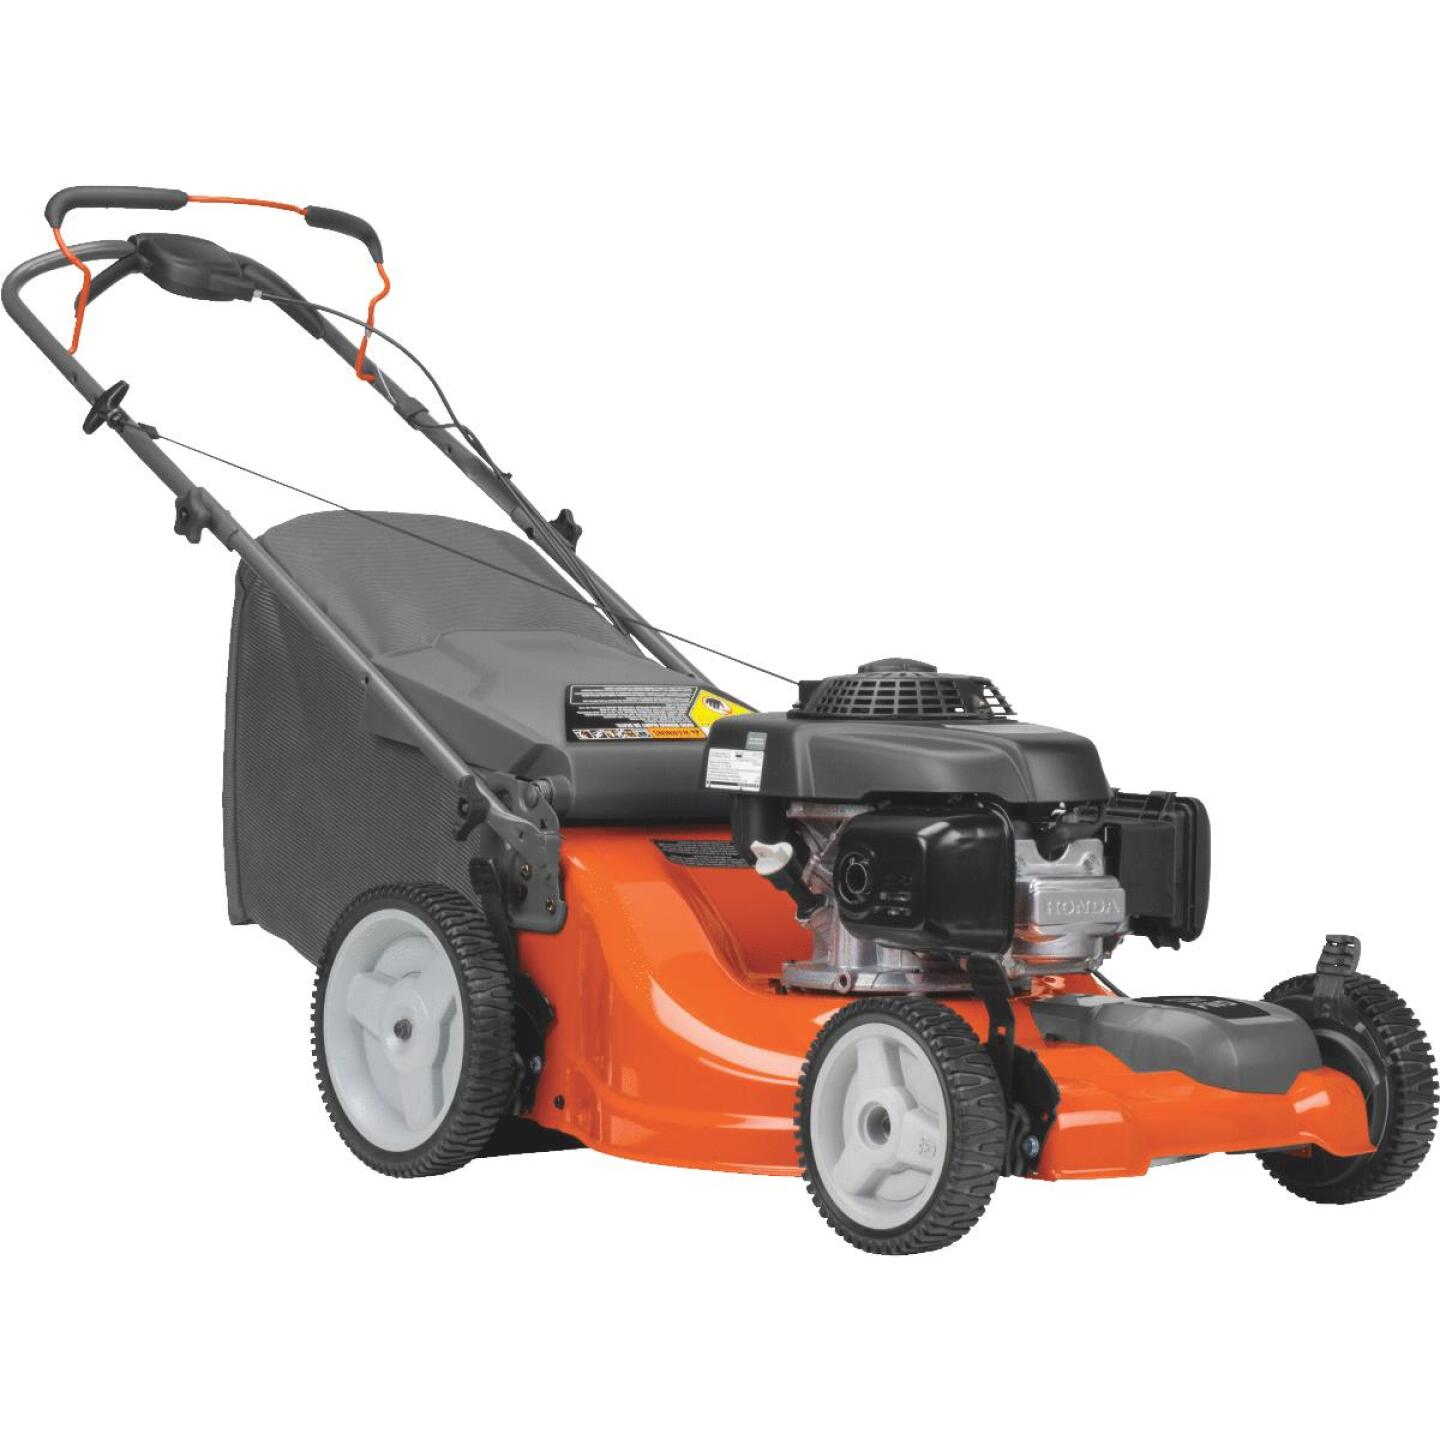 Husqvarna LC221FH 21 In. 160cc OHV Honda Front Wheel Drive Self-Propelled Gas Lawn Mower Image 1